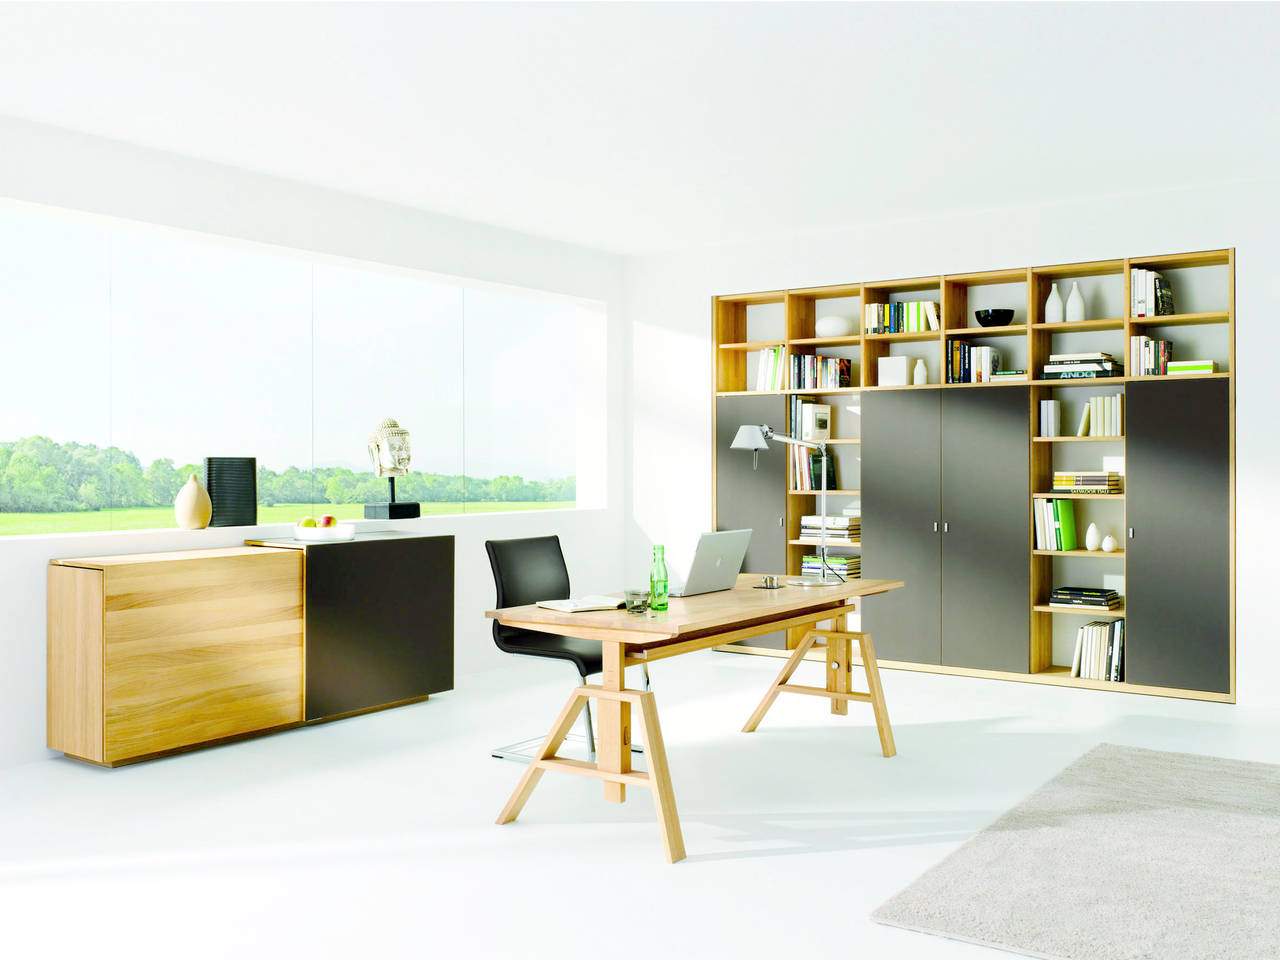 Home office by team 7 for Piccole planimetrie per l home office